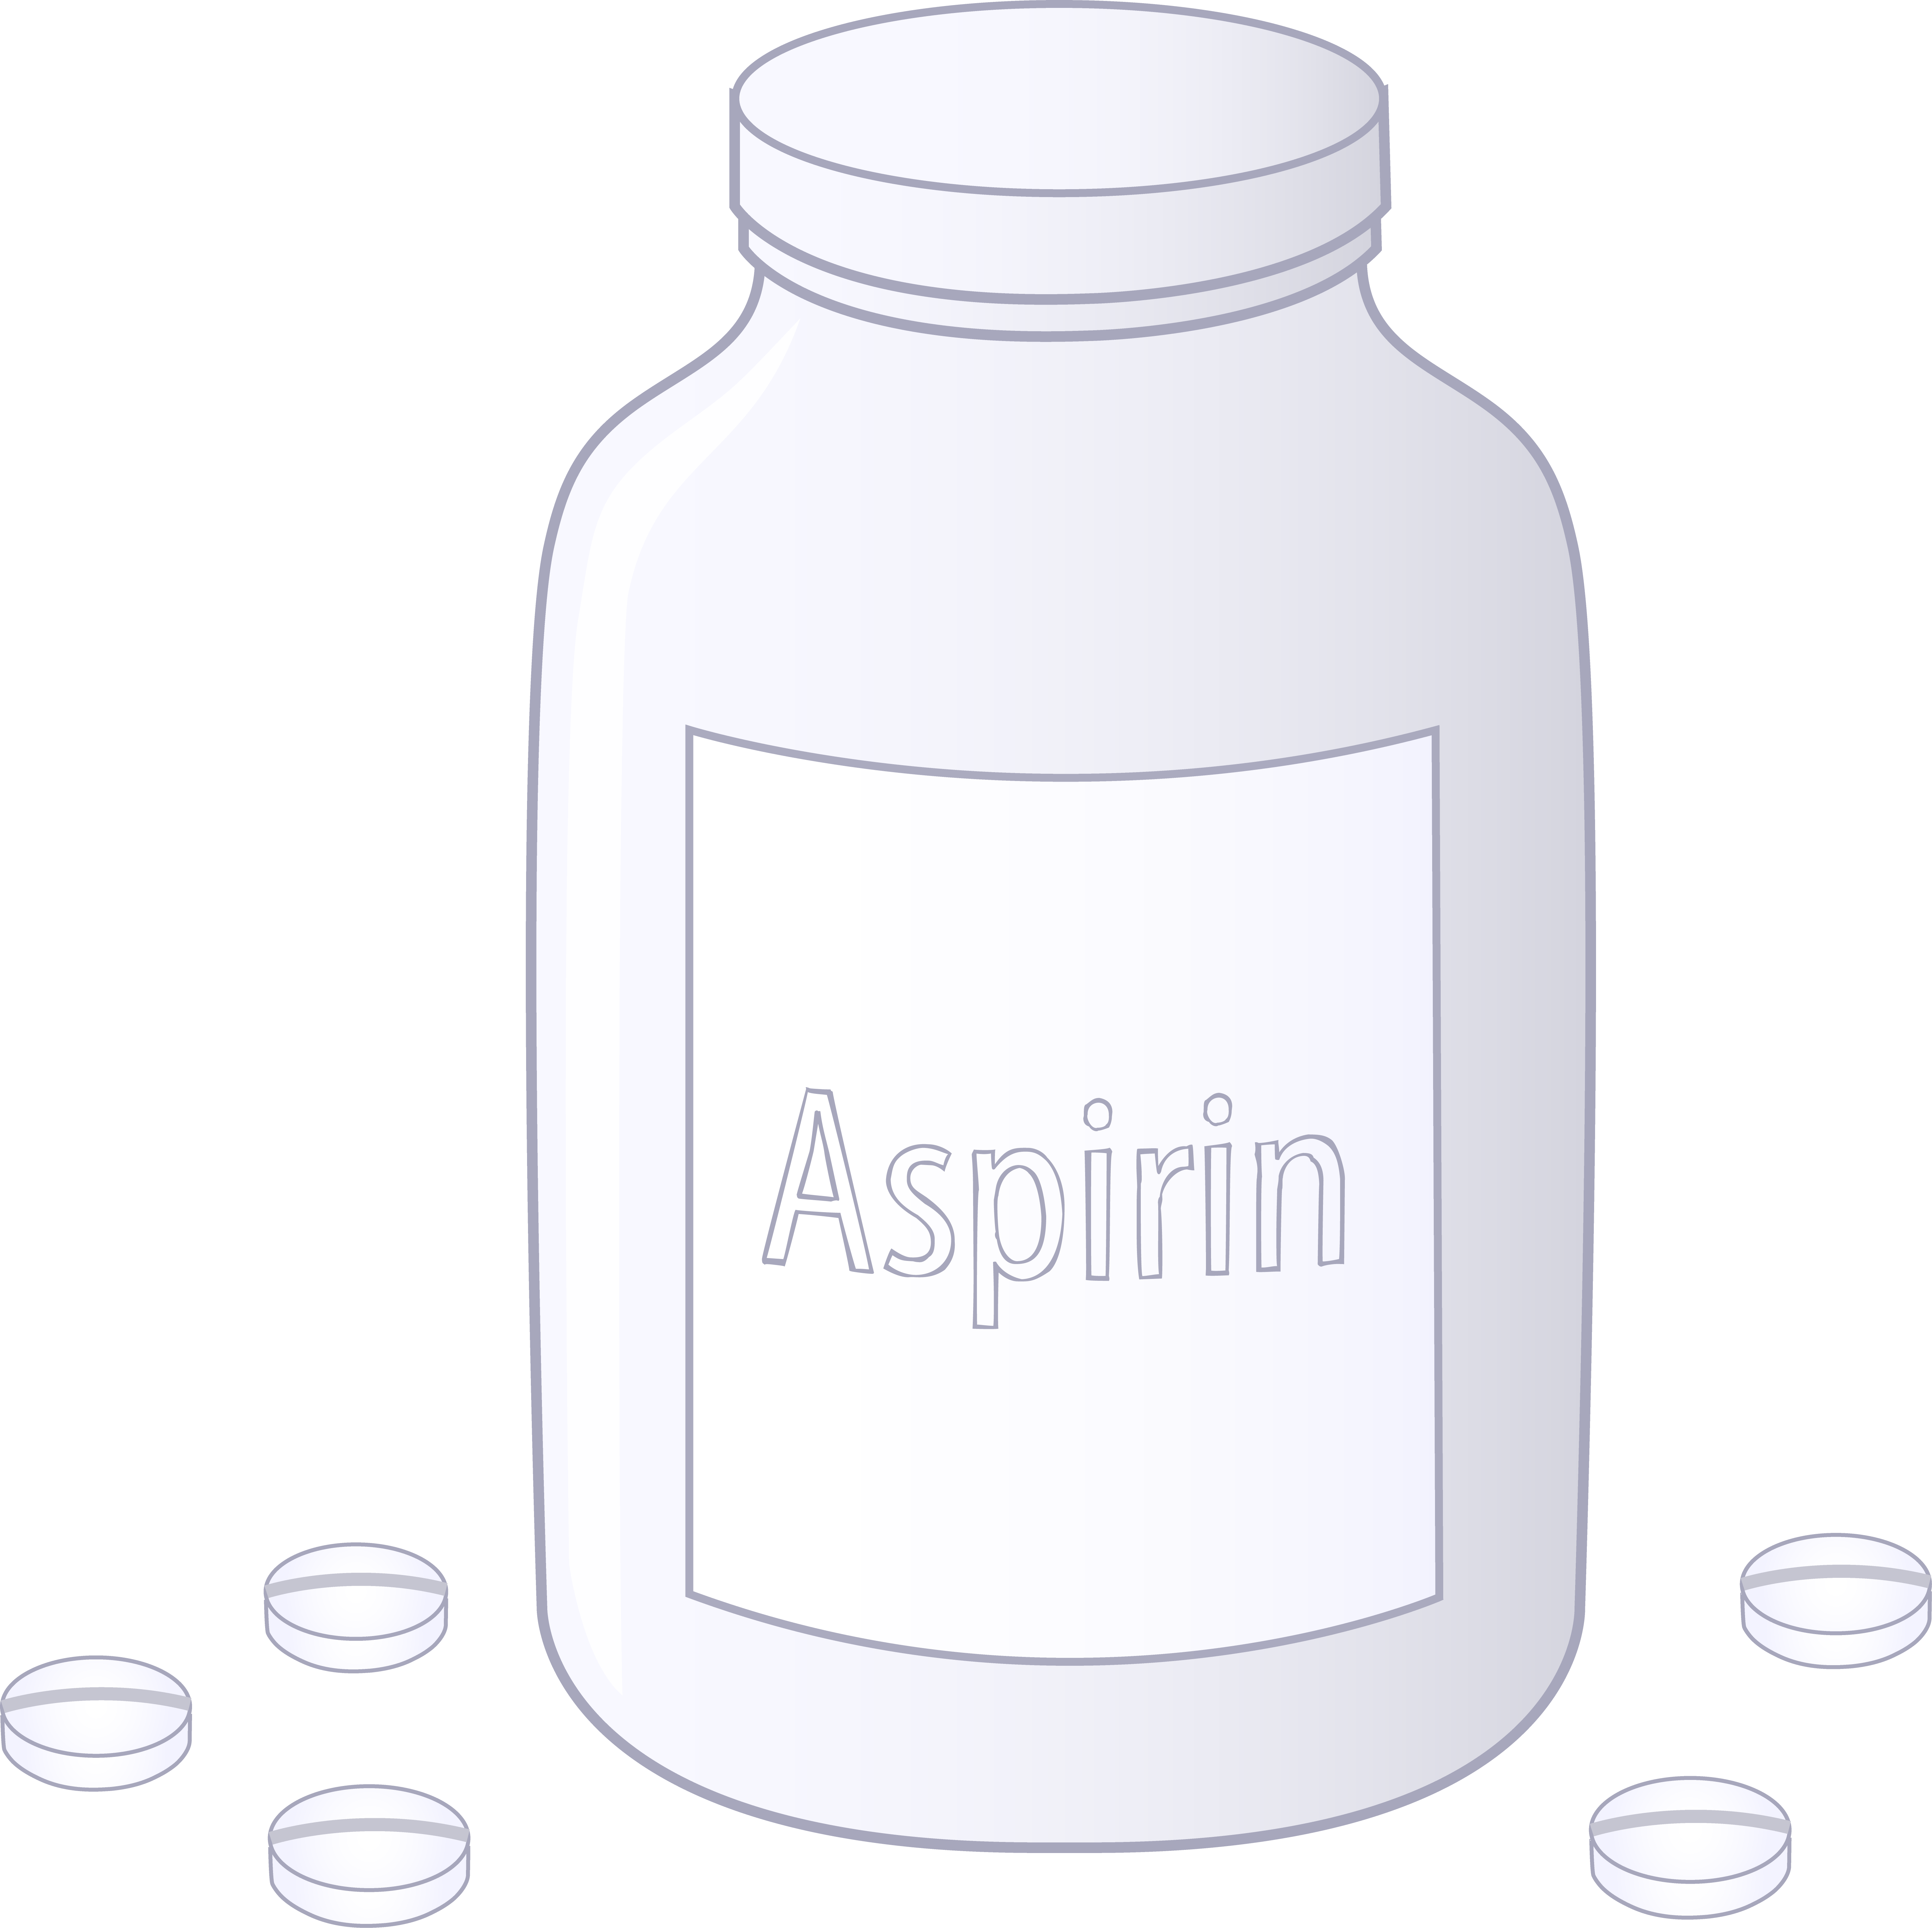 Bottle of aspirin tablets. Medication clipart medicine container